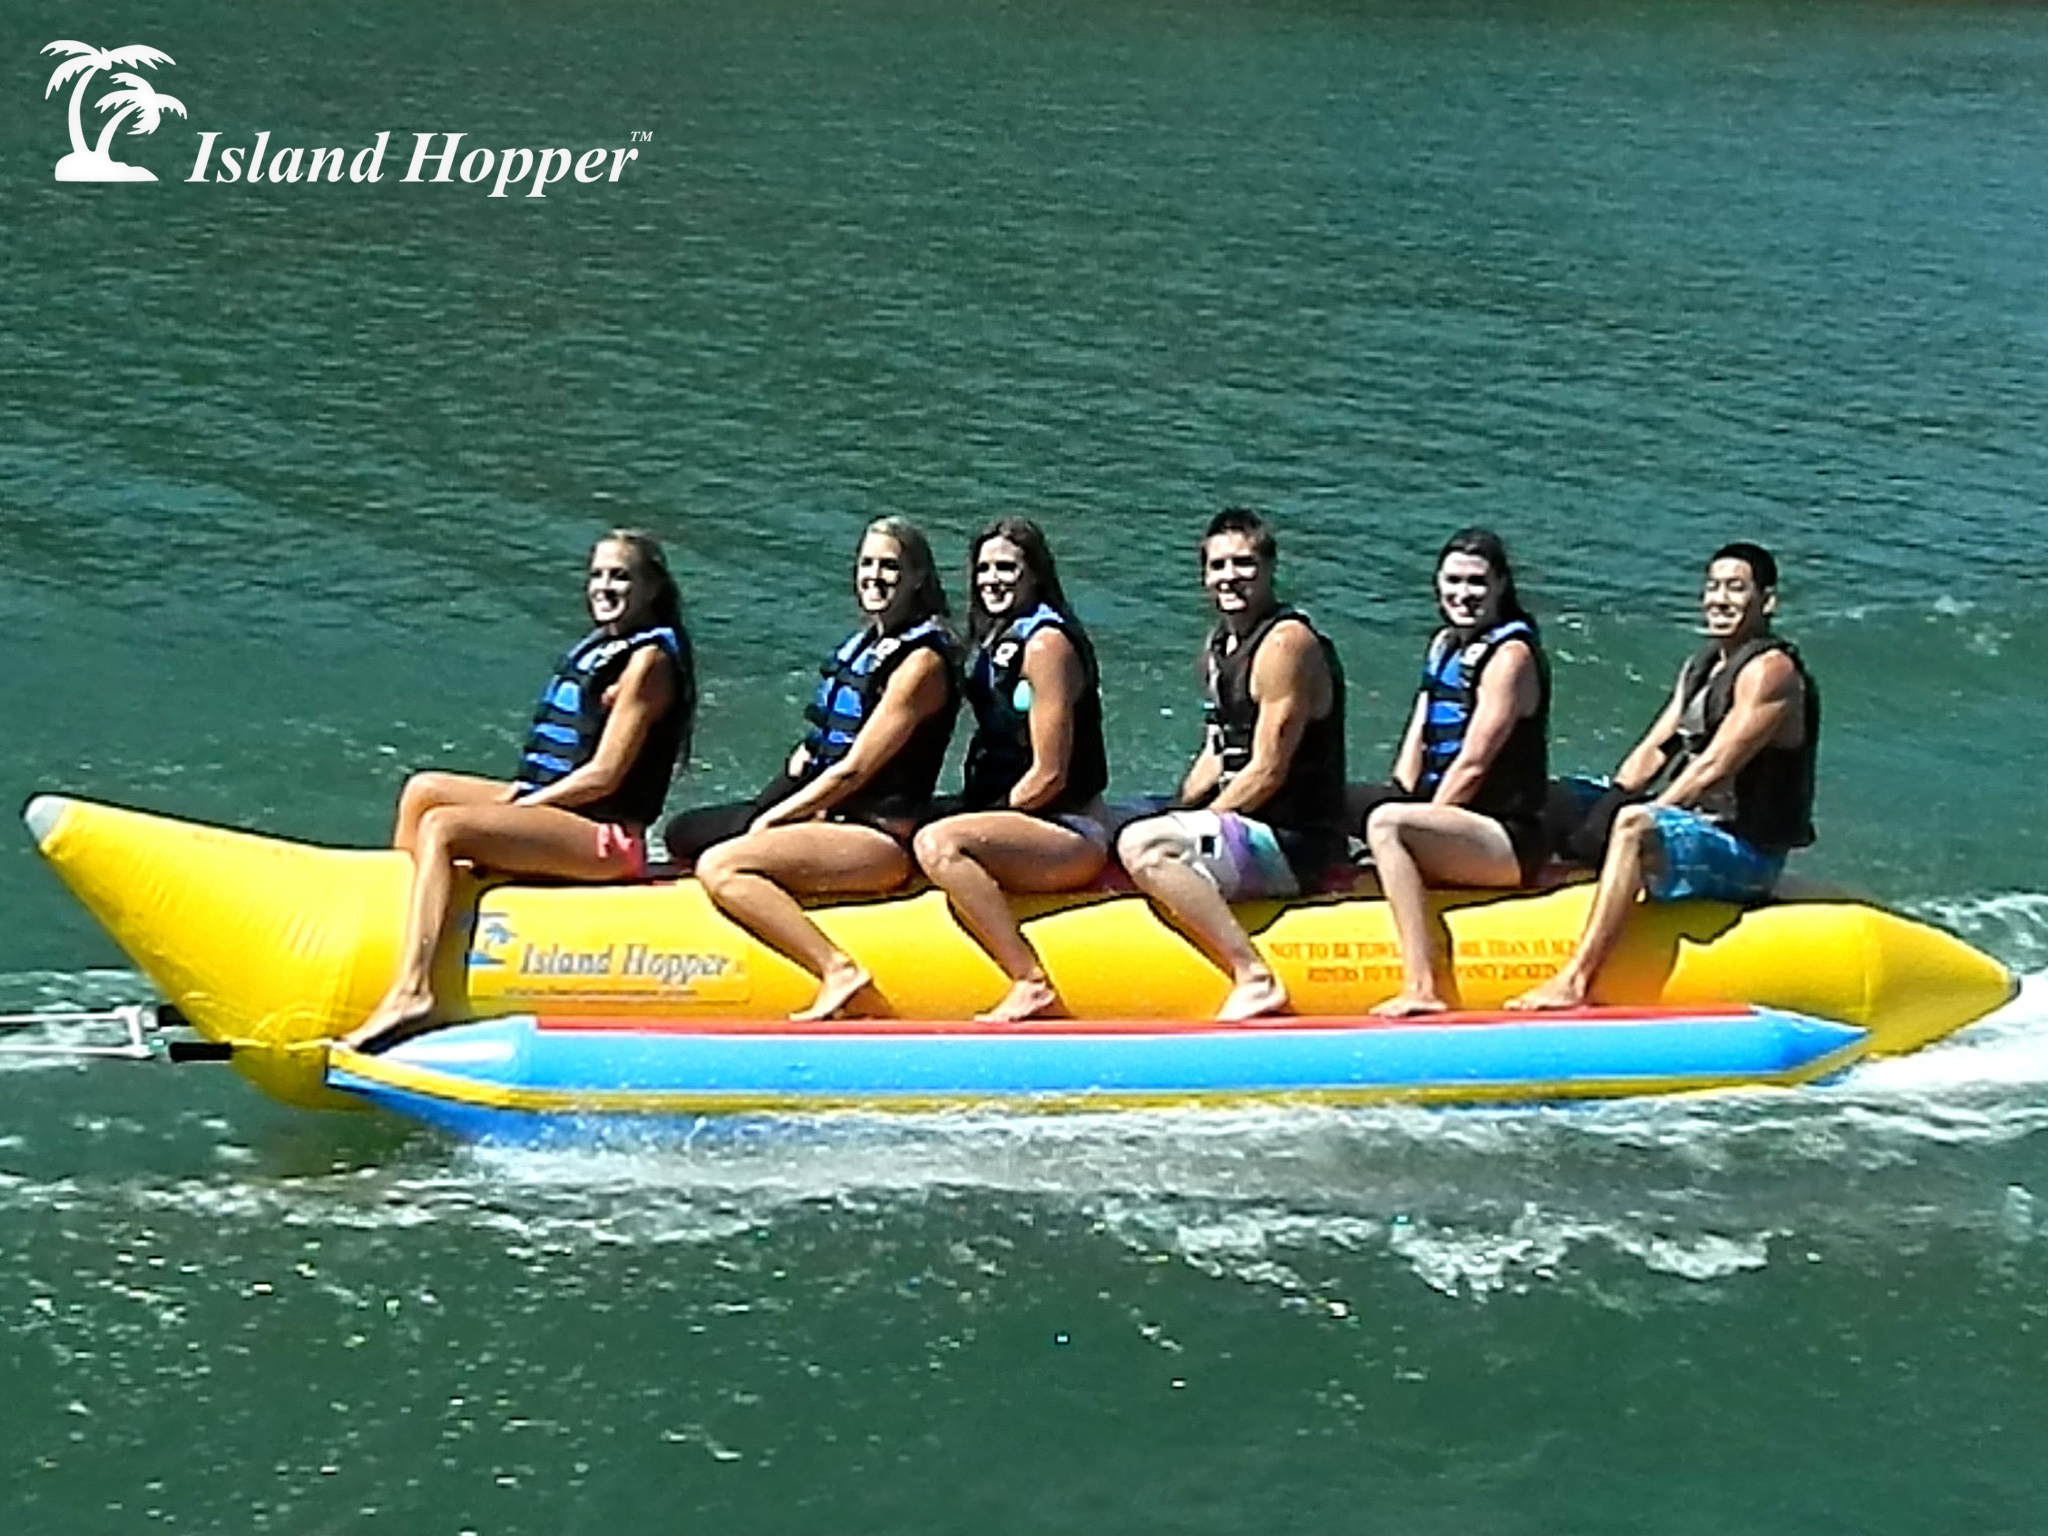 Aqua Sports PVC-6-INLINE 6 Passenger 19 Feet In-line Seats Island Hopper Commercial Banana Water Sled